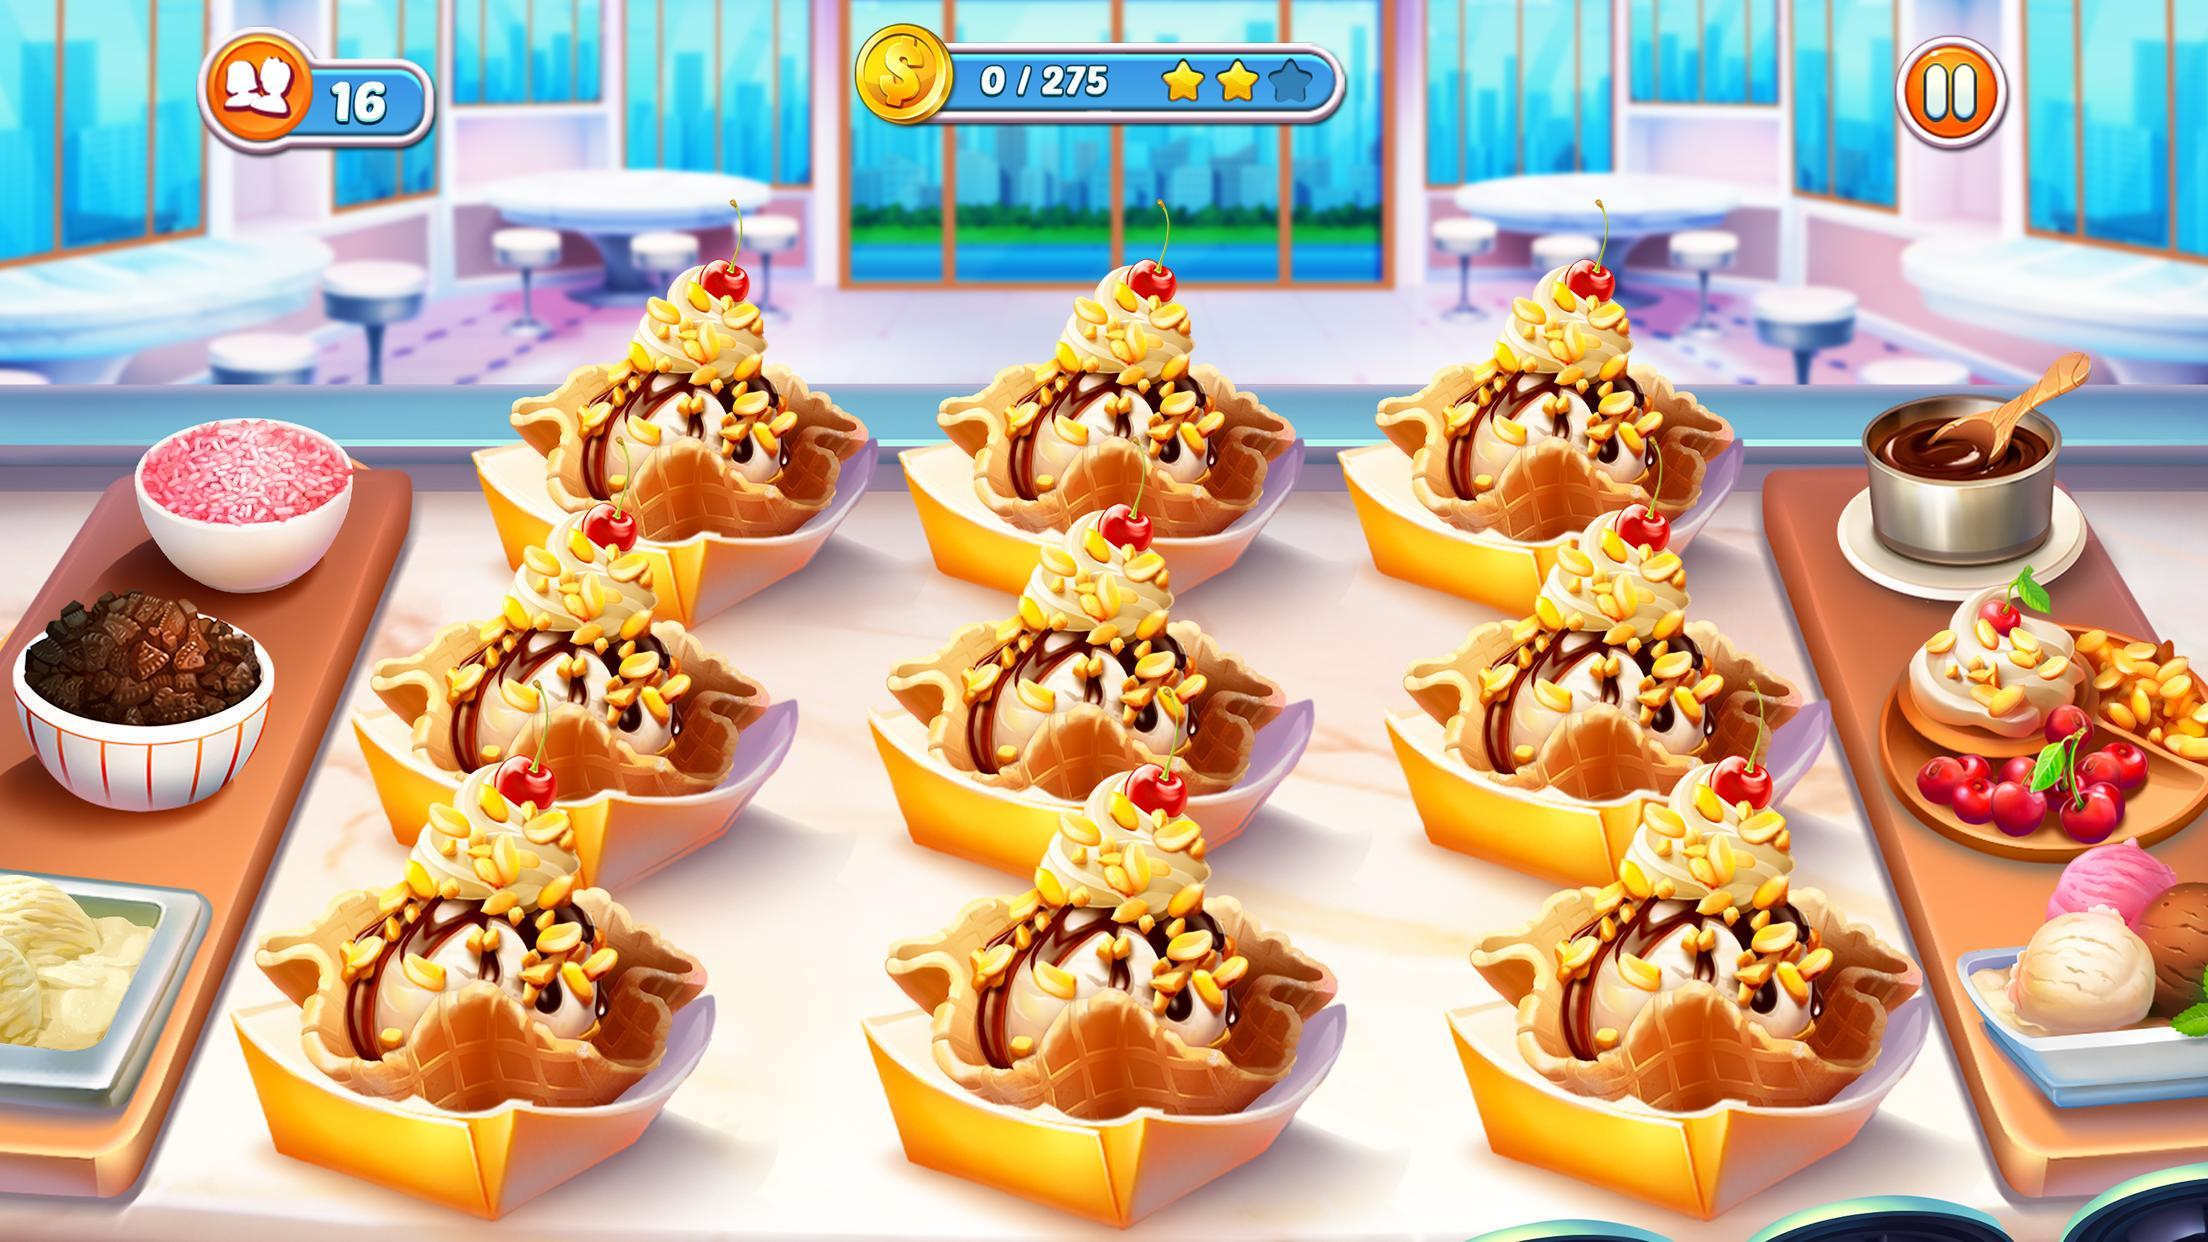 Cook It! Madness of Free Frenzy Cooking Games City 1.3.3 Screenshot 6